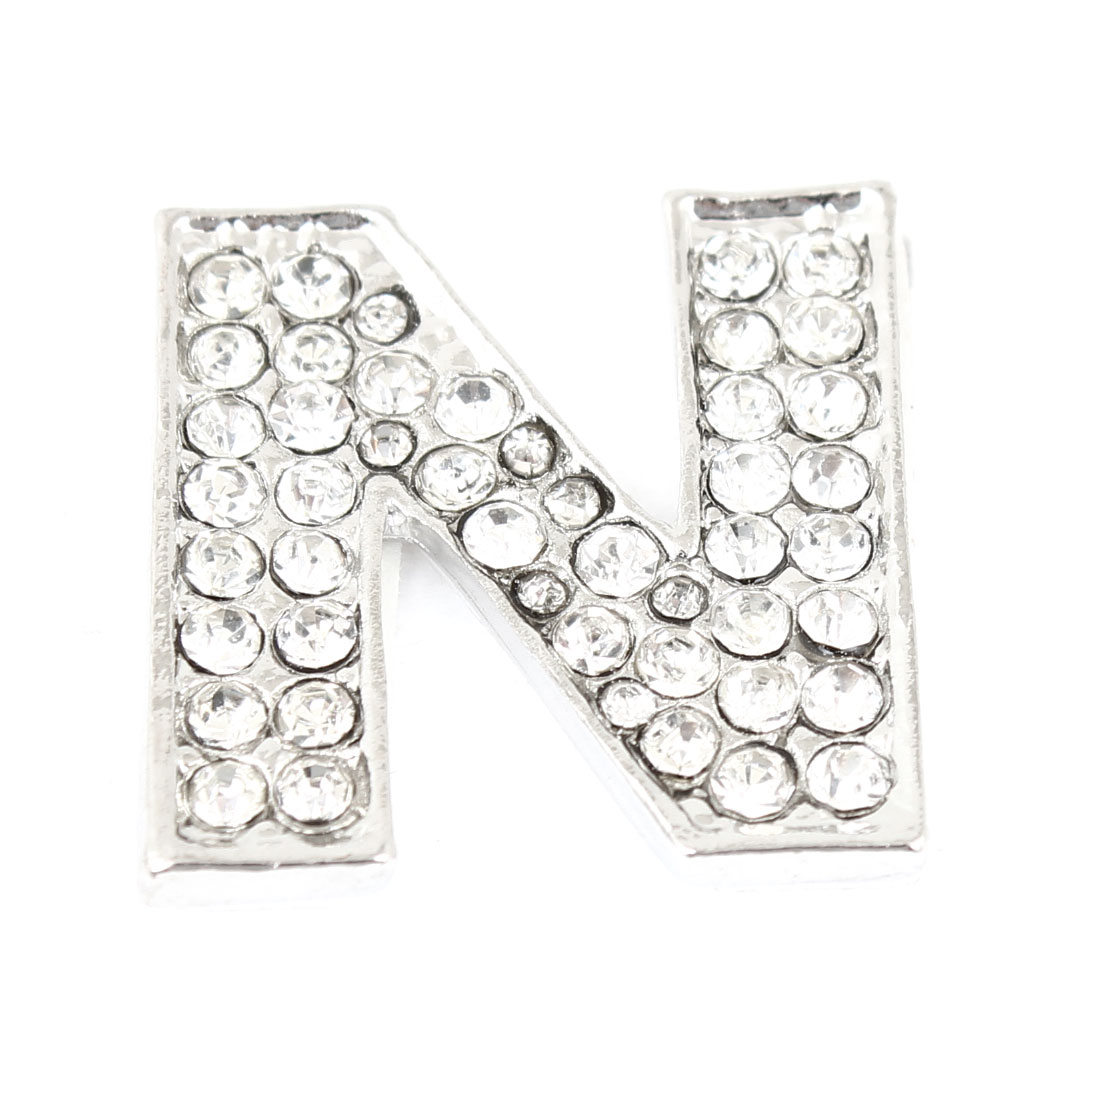 Letter N Shape Rhinestones Metal Decorative Self Adhesive 3D Sticker for Car